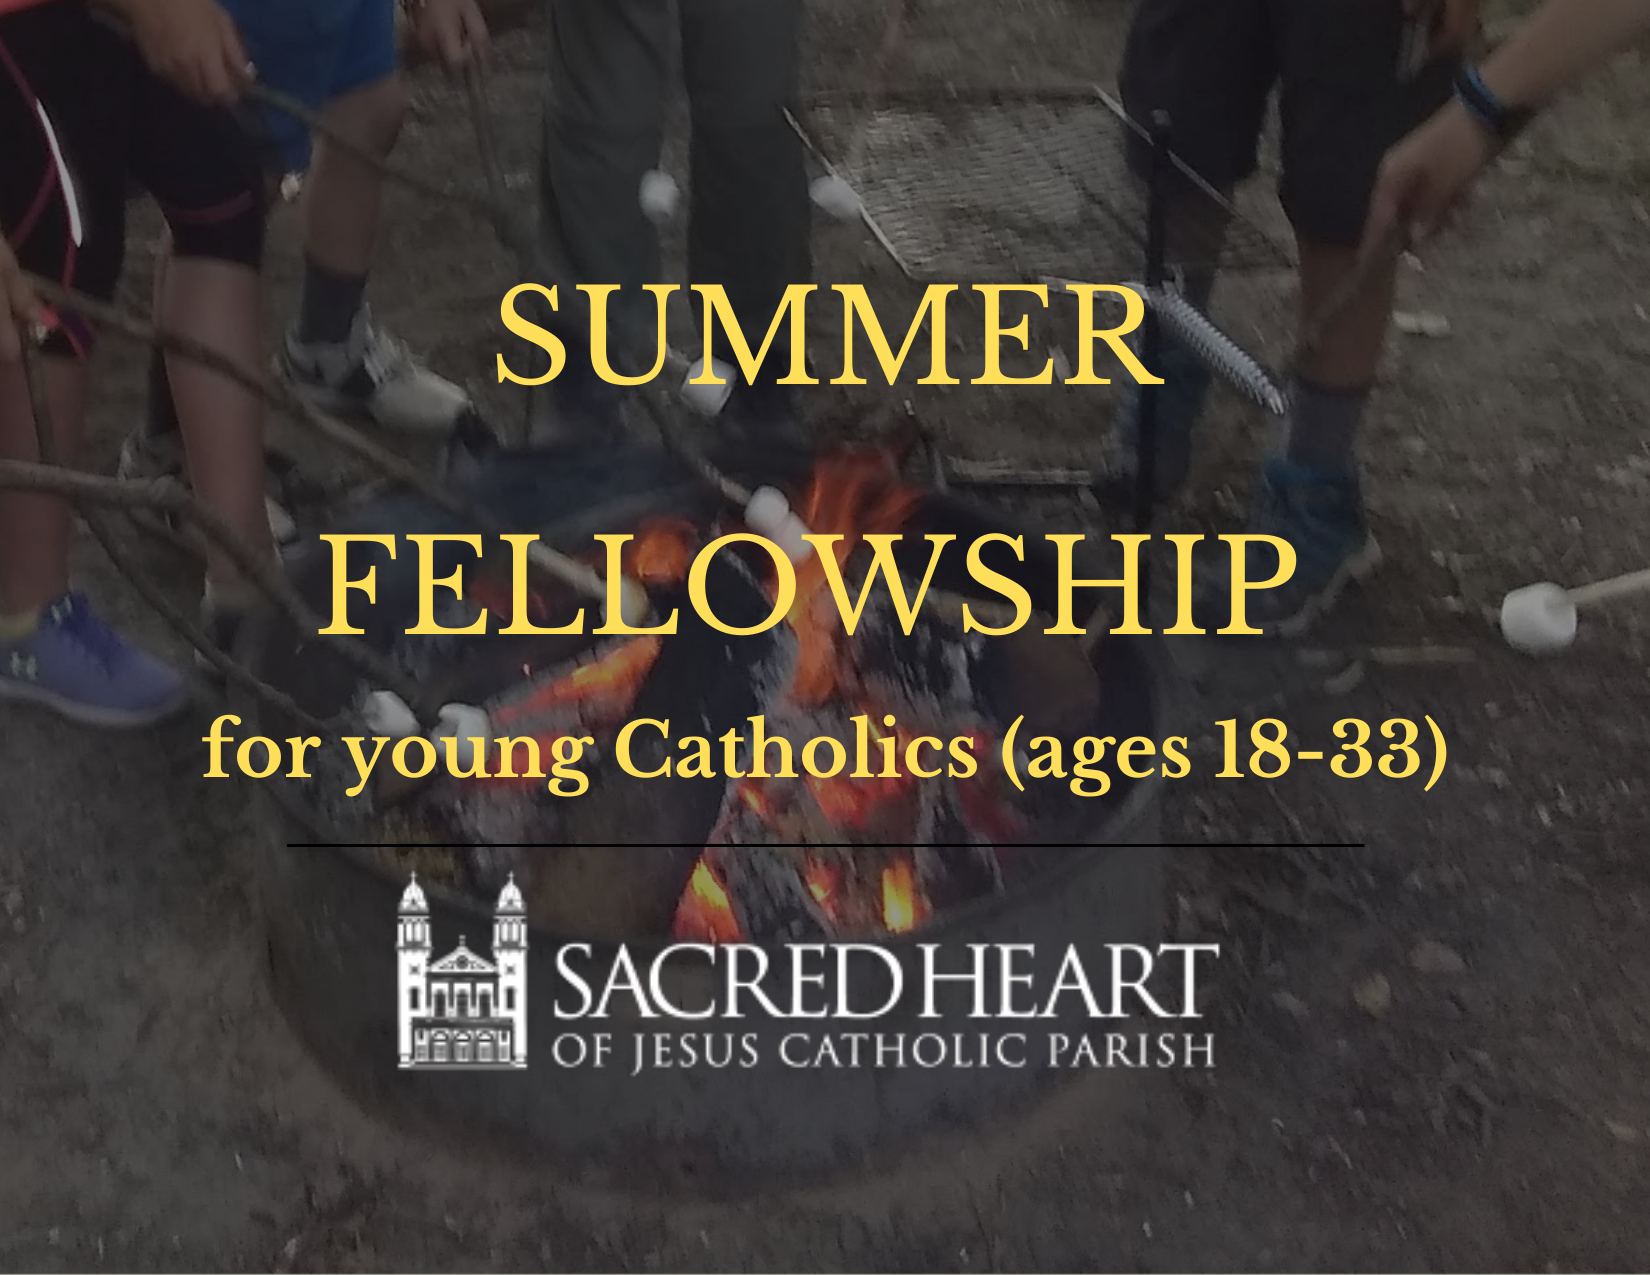 Calling all young Catholics (ages 18-33) – Gathering on May 16